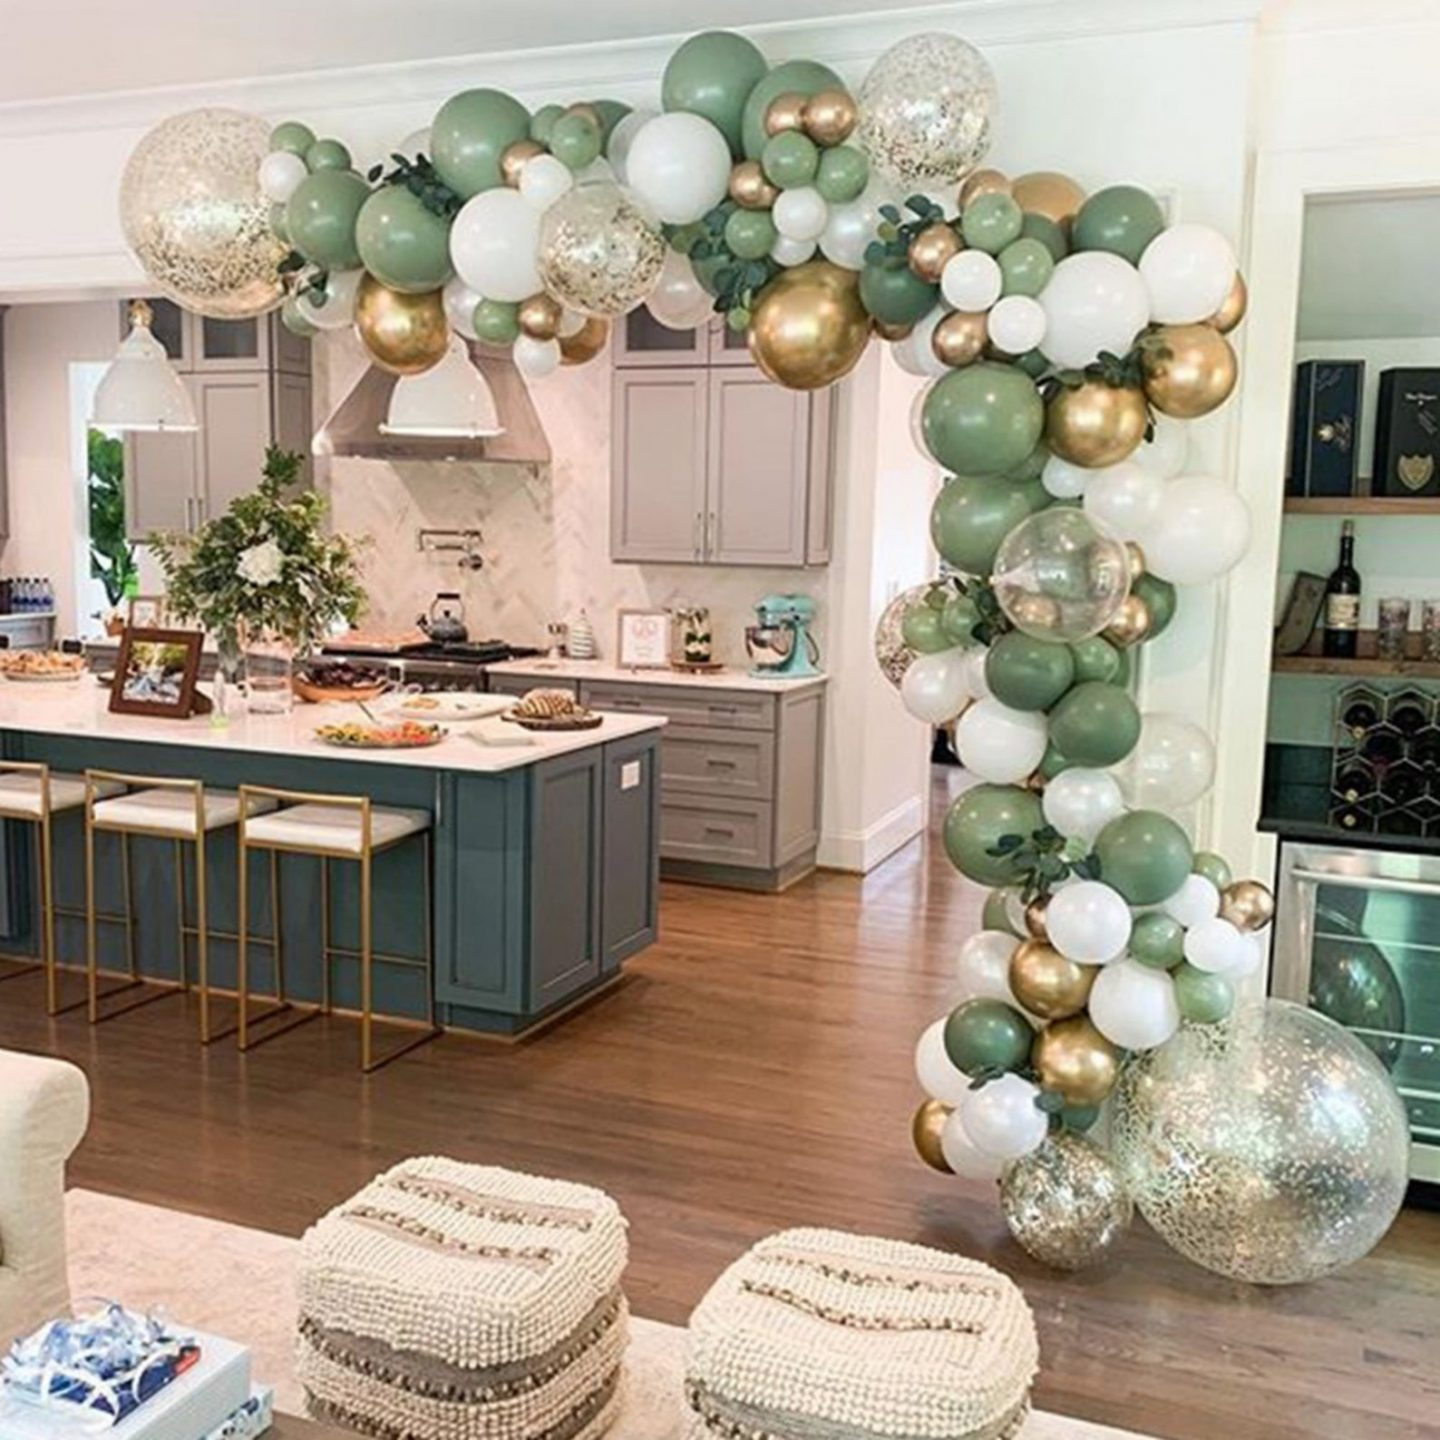 Birthday balloon garland in green, white and gold